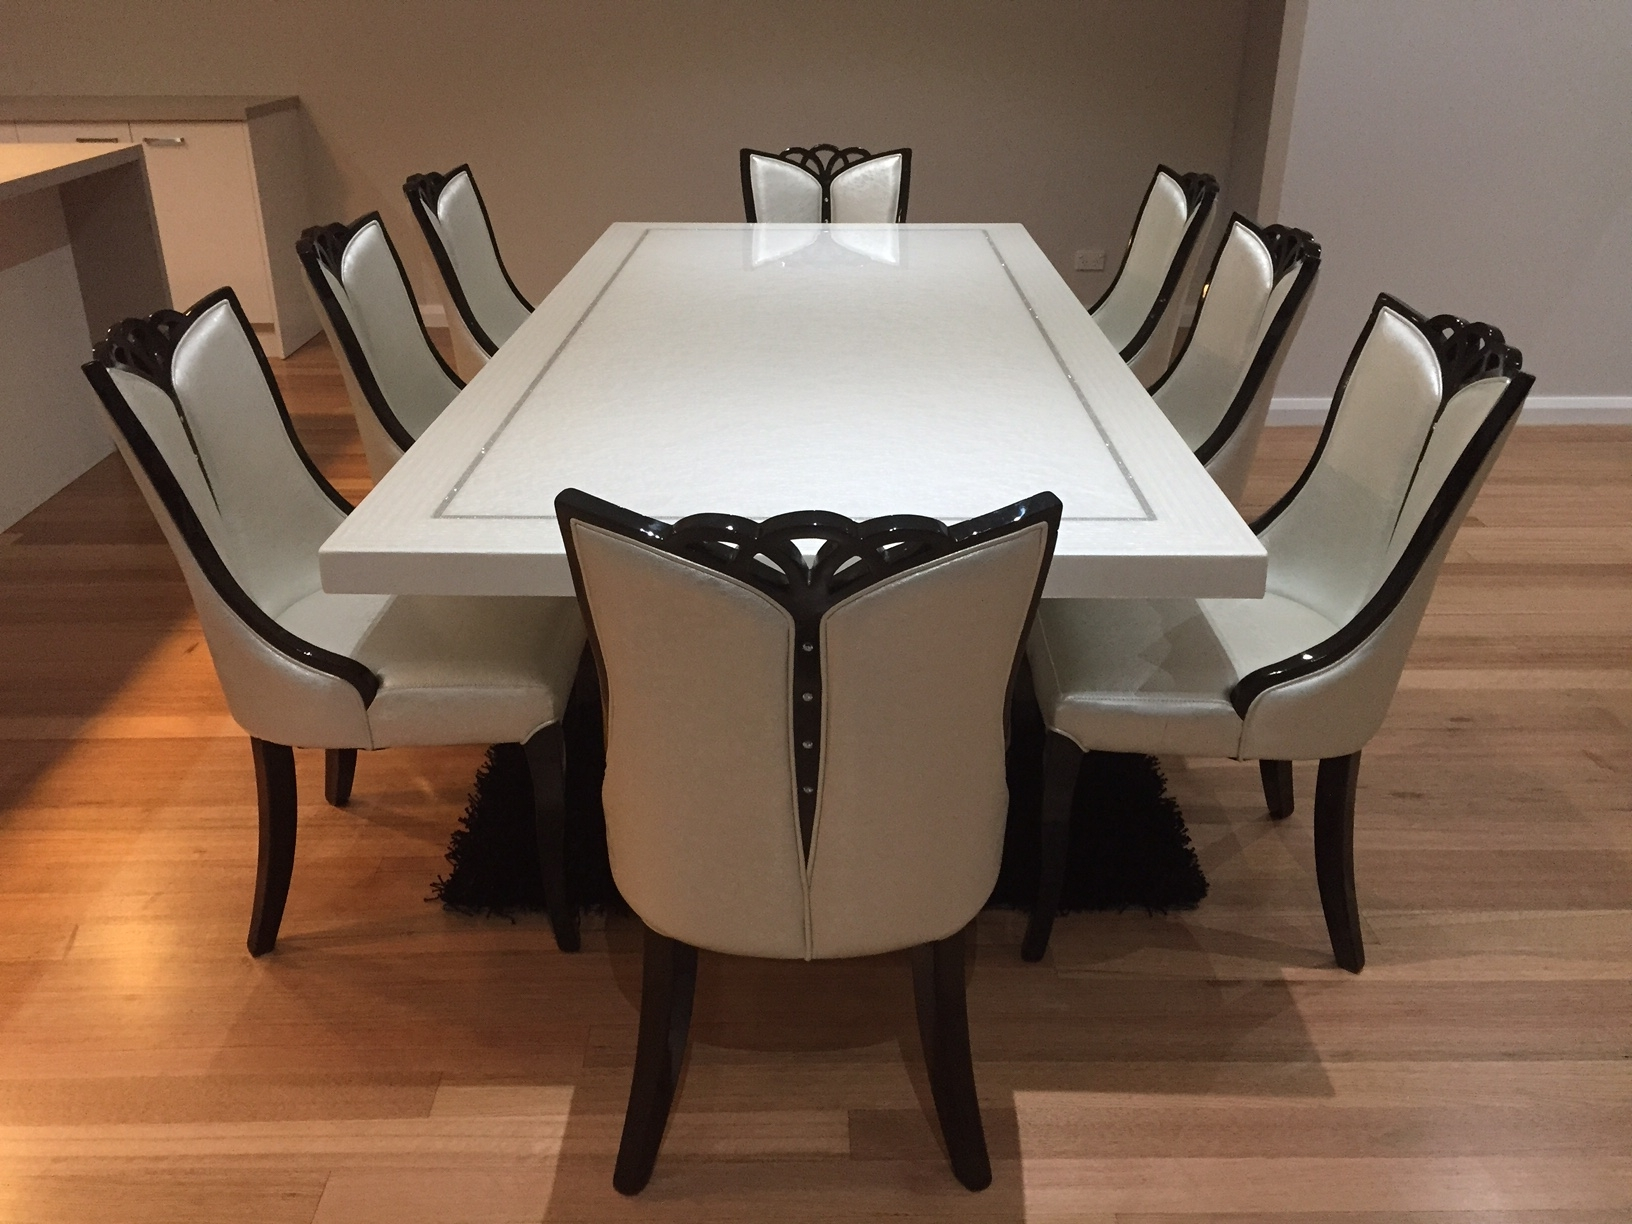 2018 Dining Tables For 8 For Bianca Marble Dining Table With 8 Chairs (View 7 of 25)